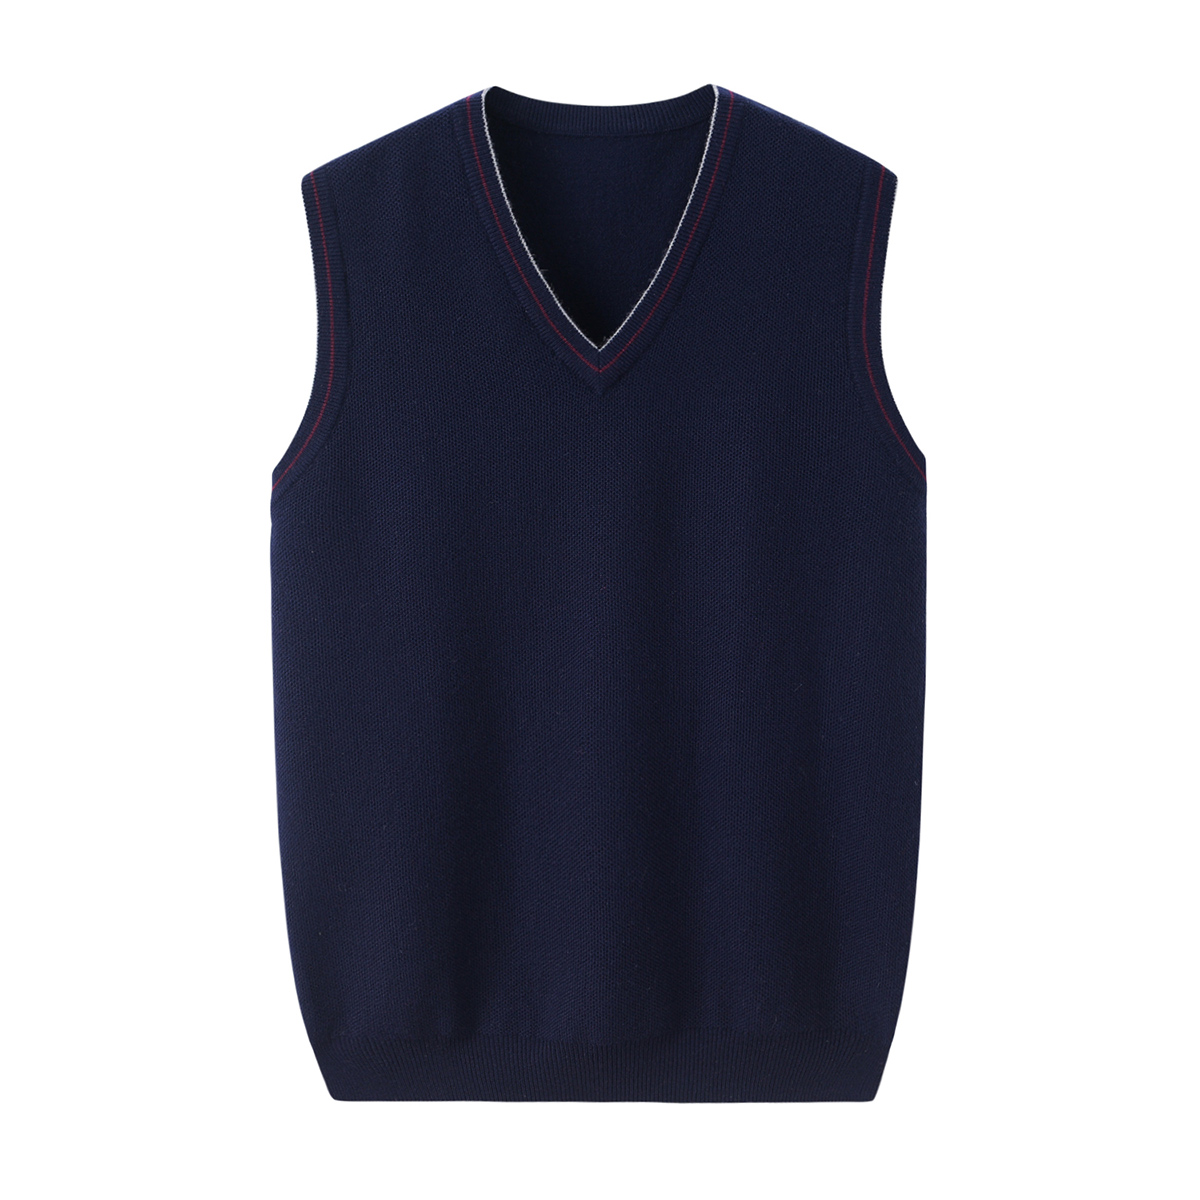 Xingrong autumn and winter new mens cashmere V-neck vest simple splicing contrast knitted shoulder casual vest thin